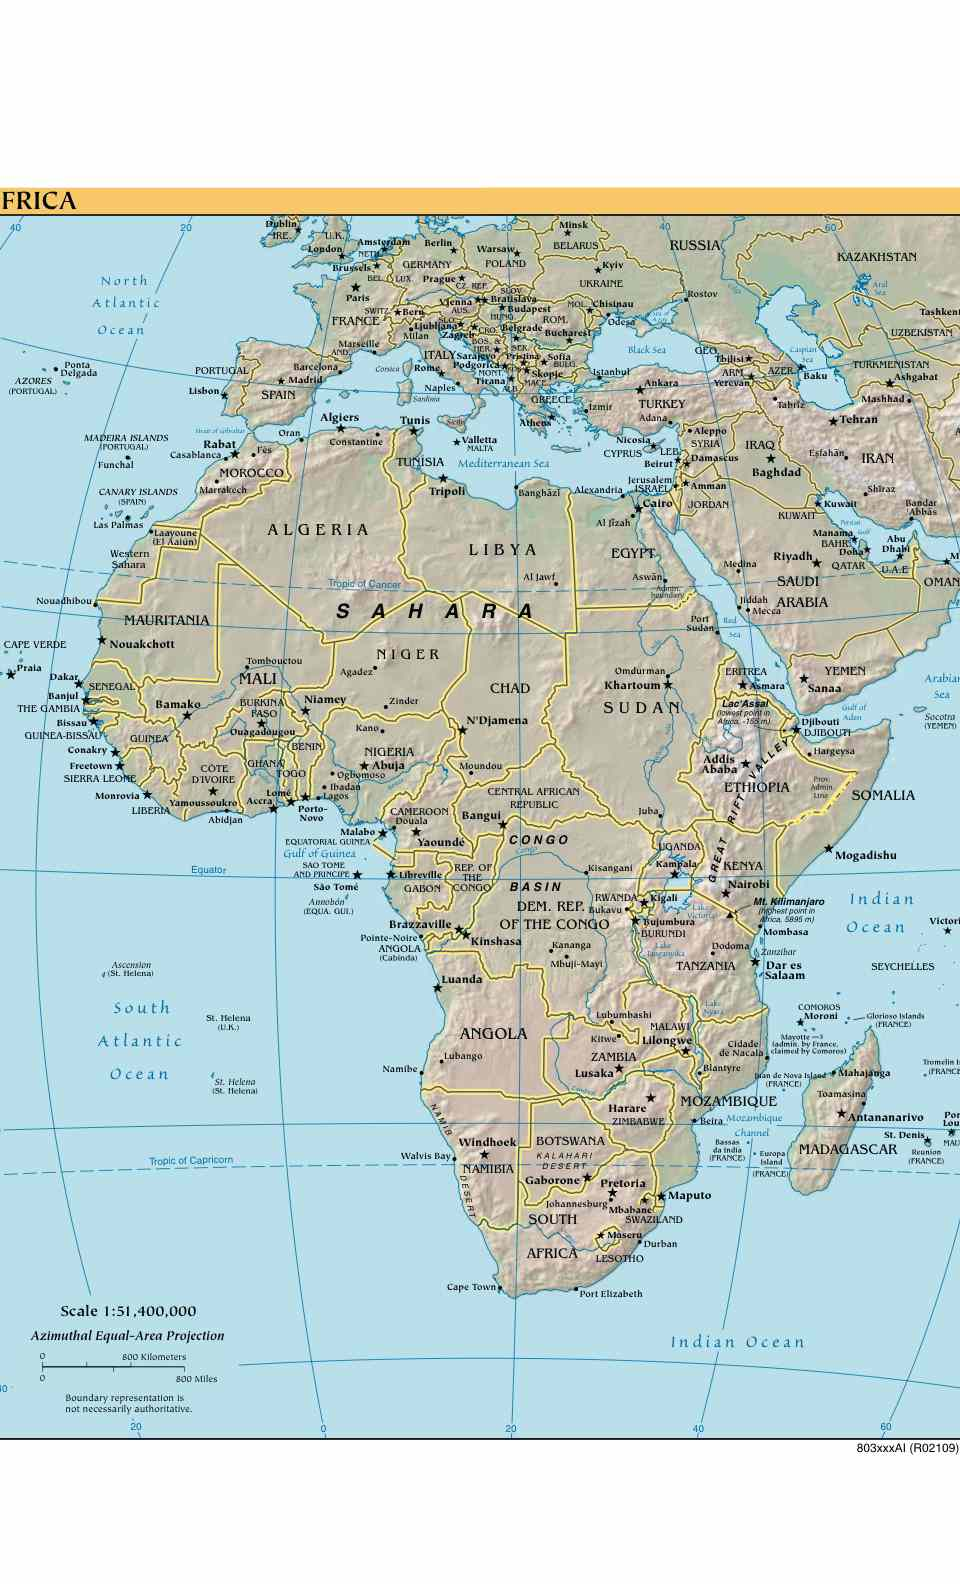 Africa Map - Africa Reference Map